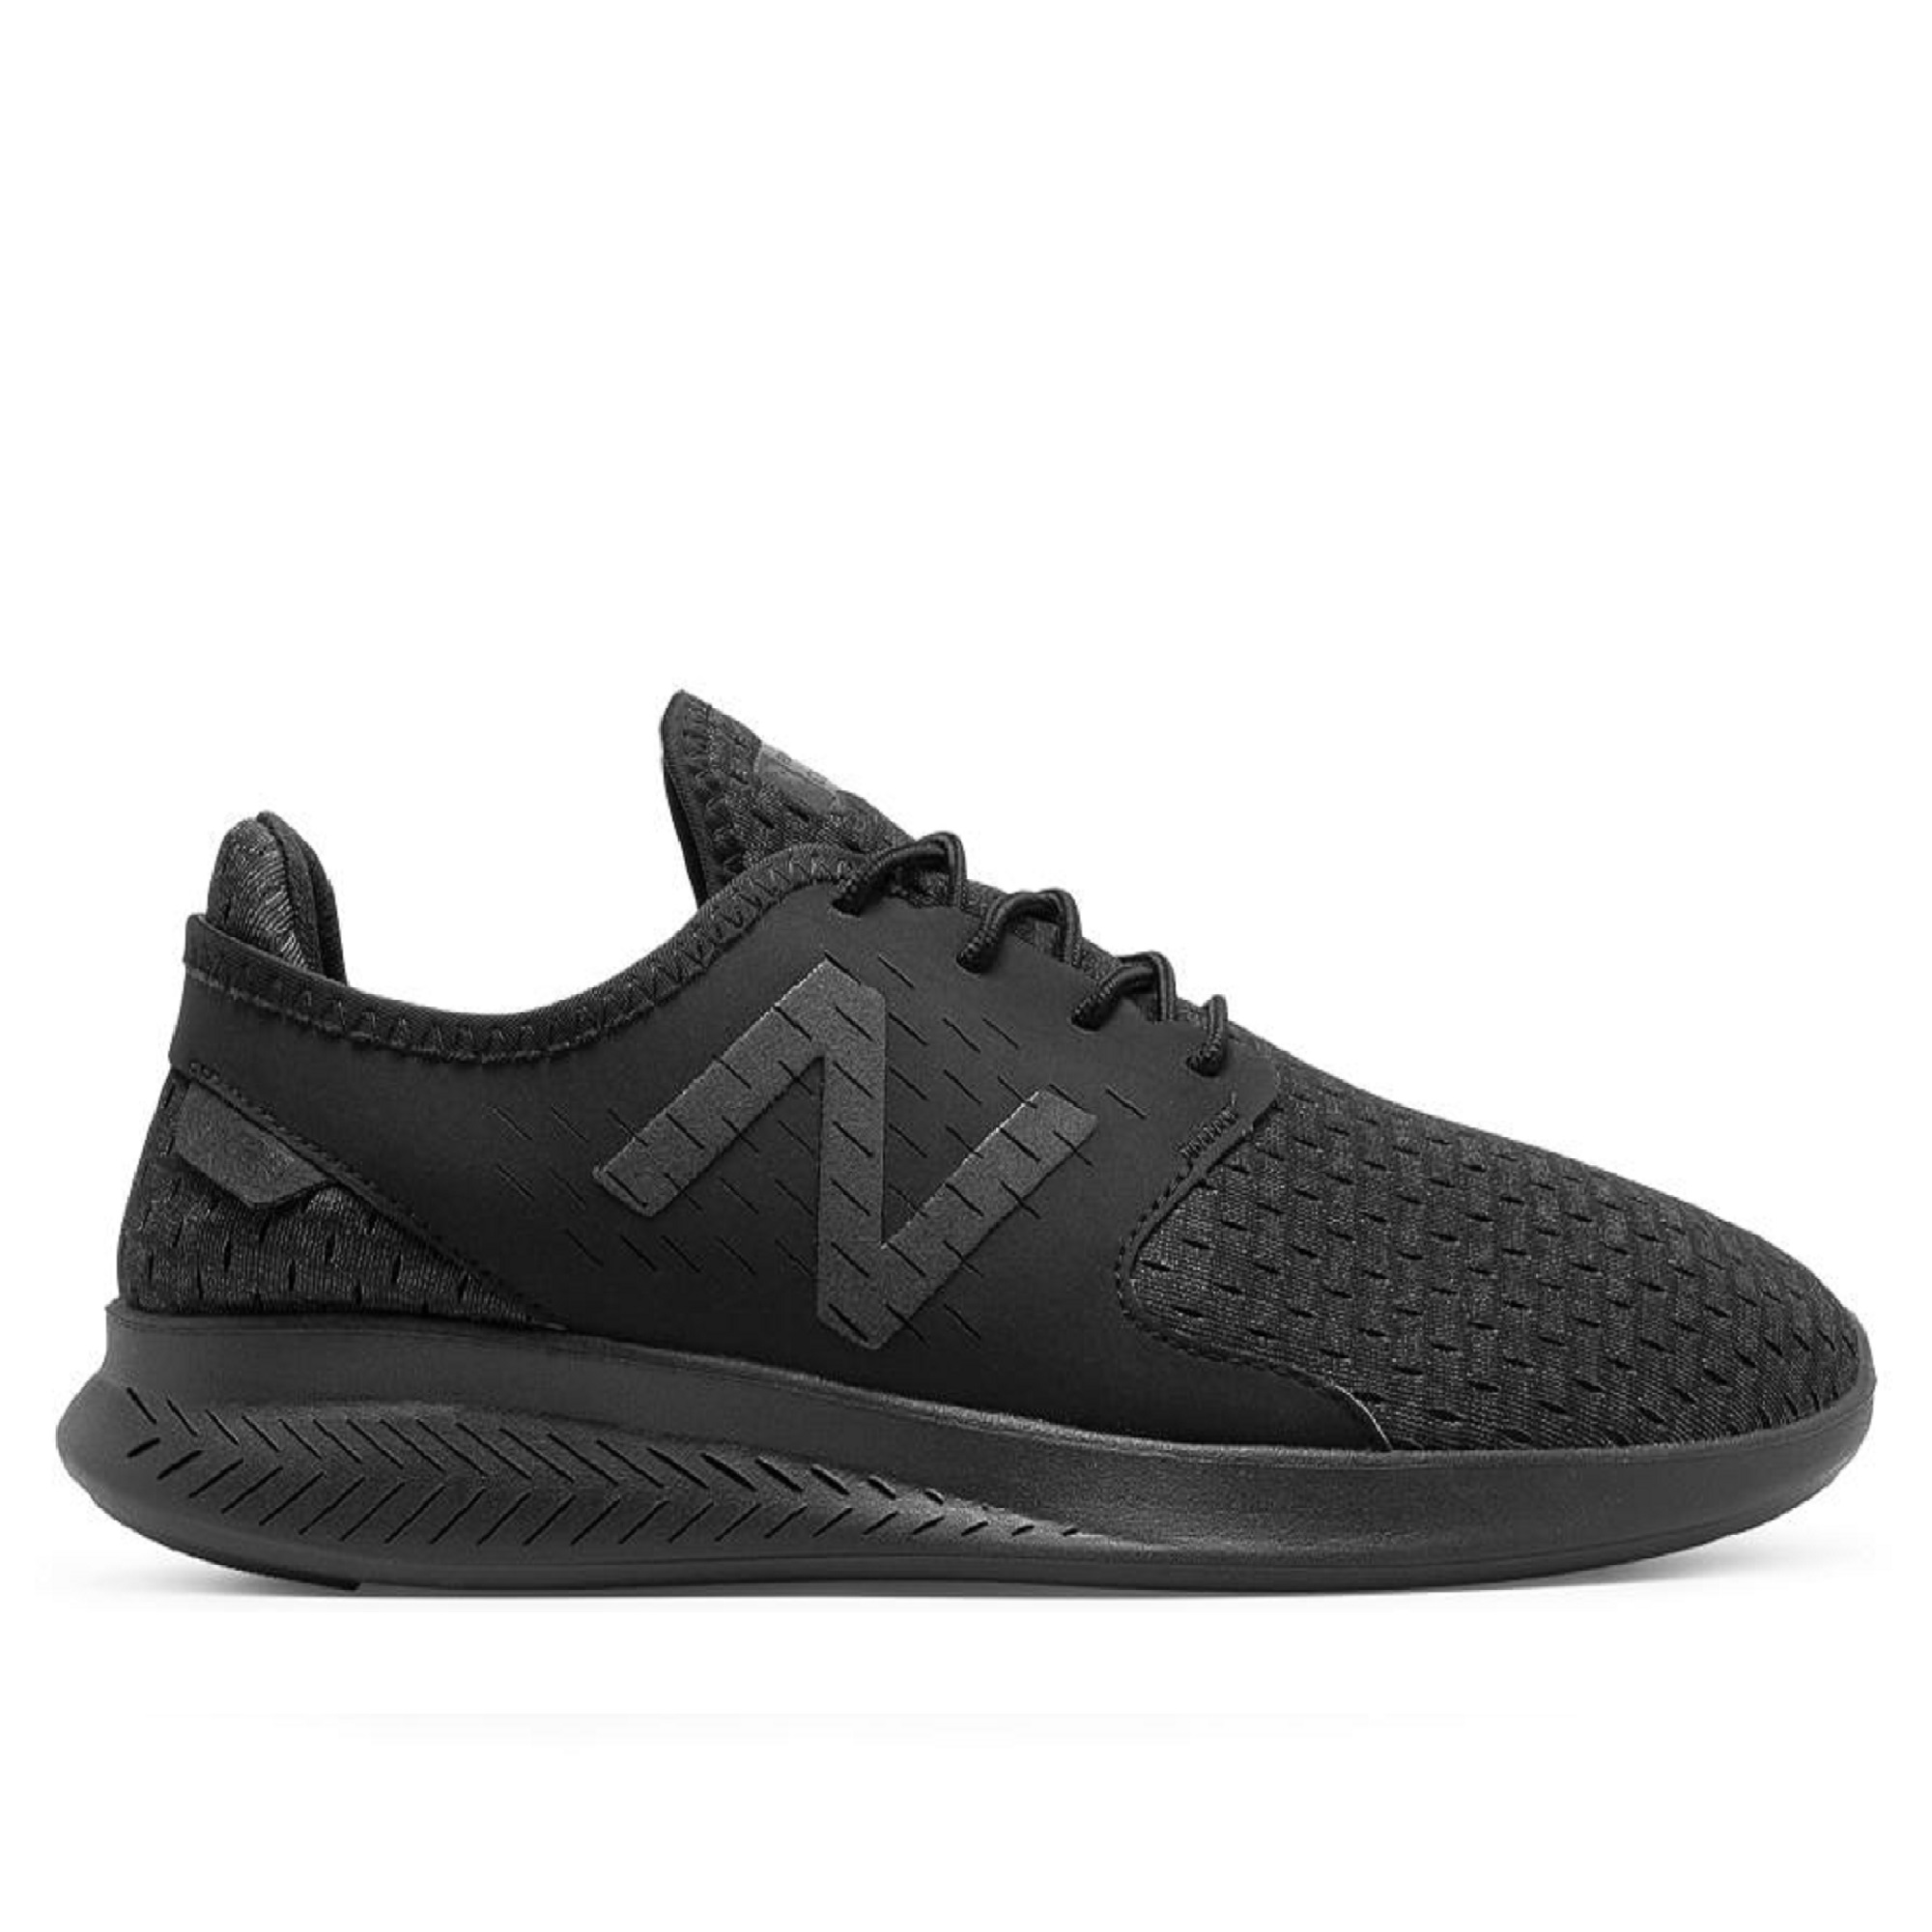 2f85b1a30e1a8 Last Pairs: 12 US Youth - School Shoes-Boys : NZ's Leading Kids ...